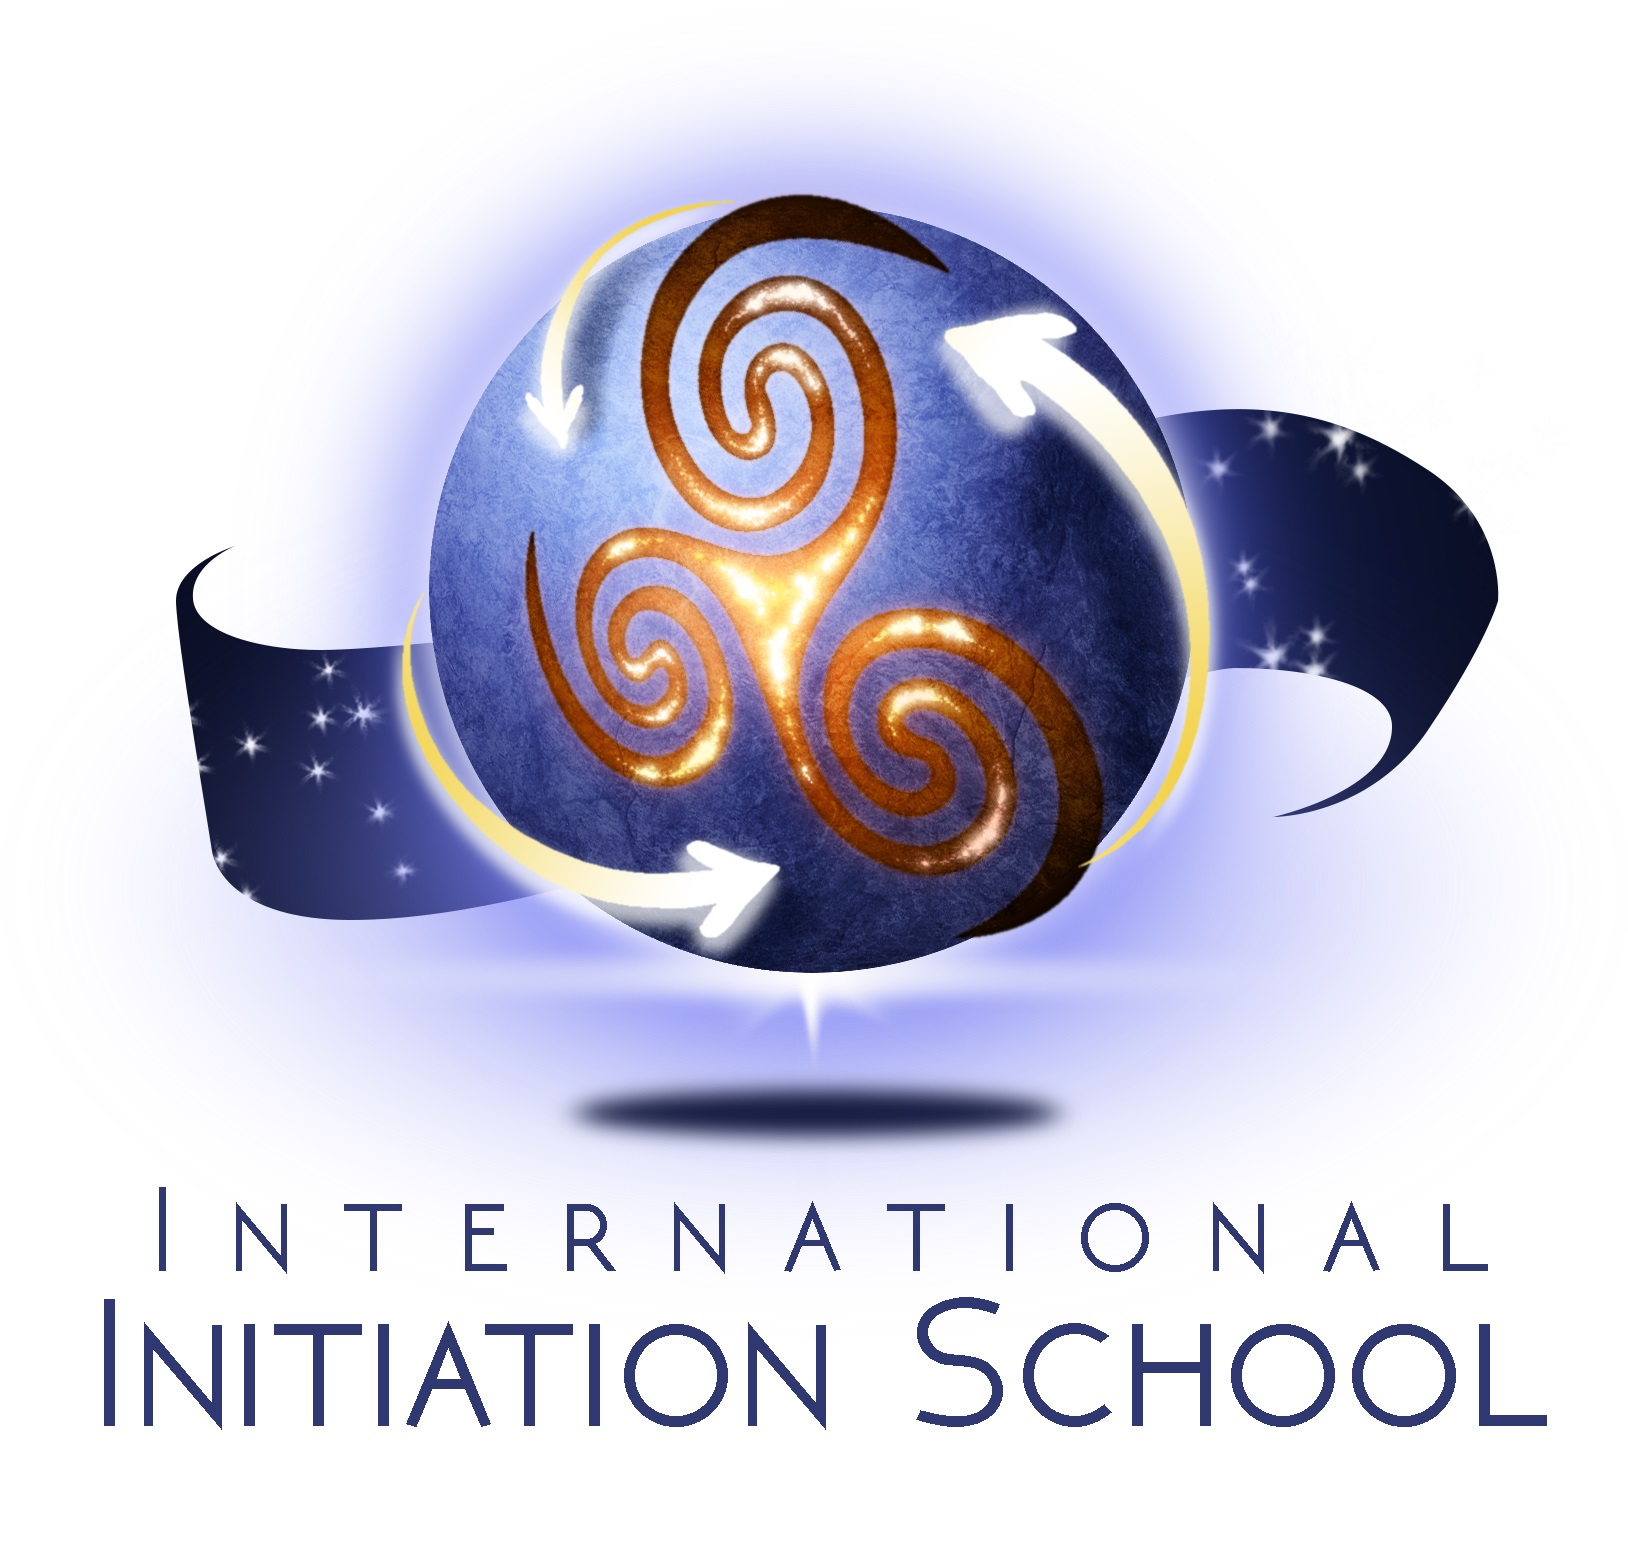 Presentazione & Inaugurazione di International Initiation School